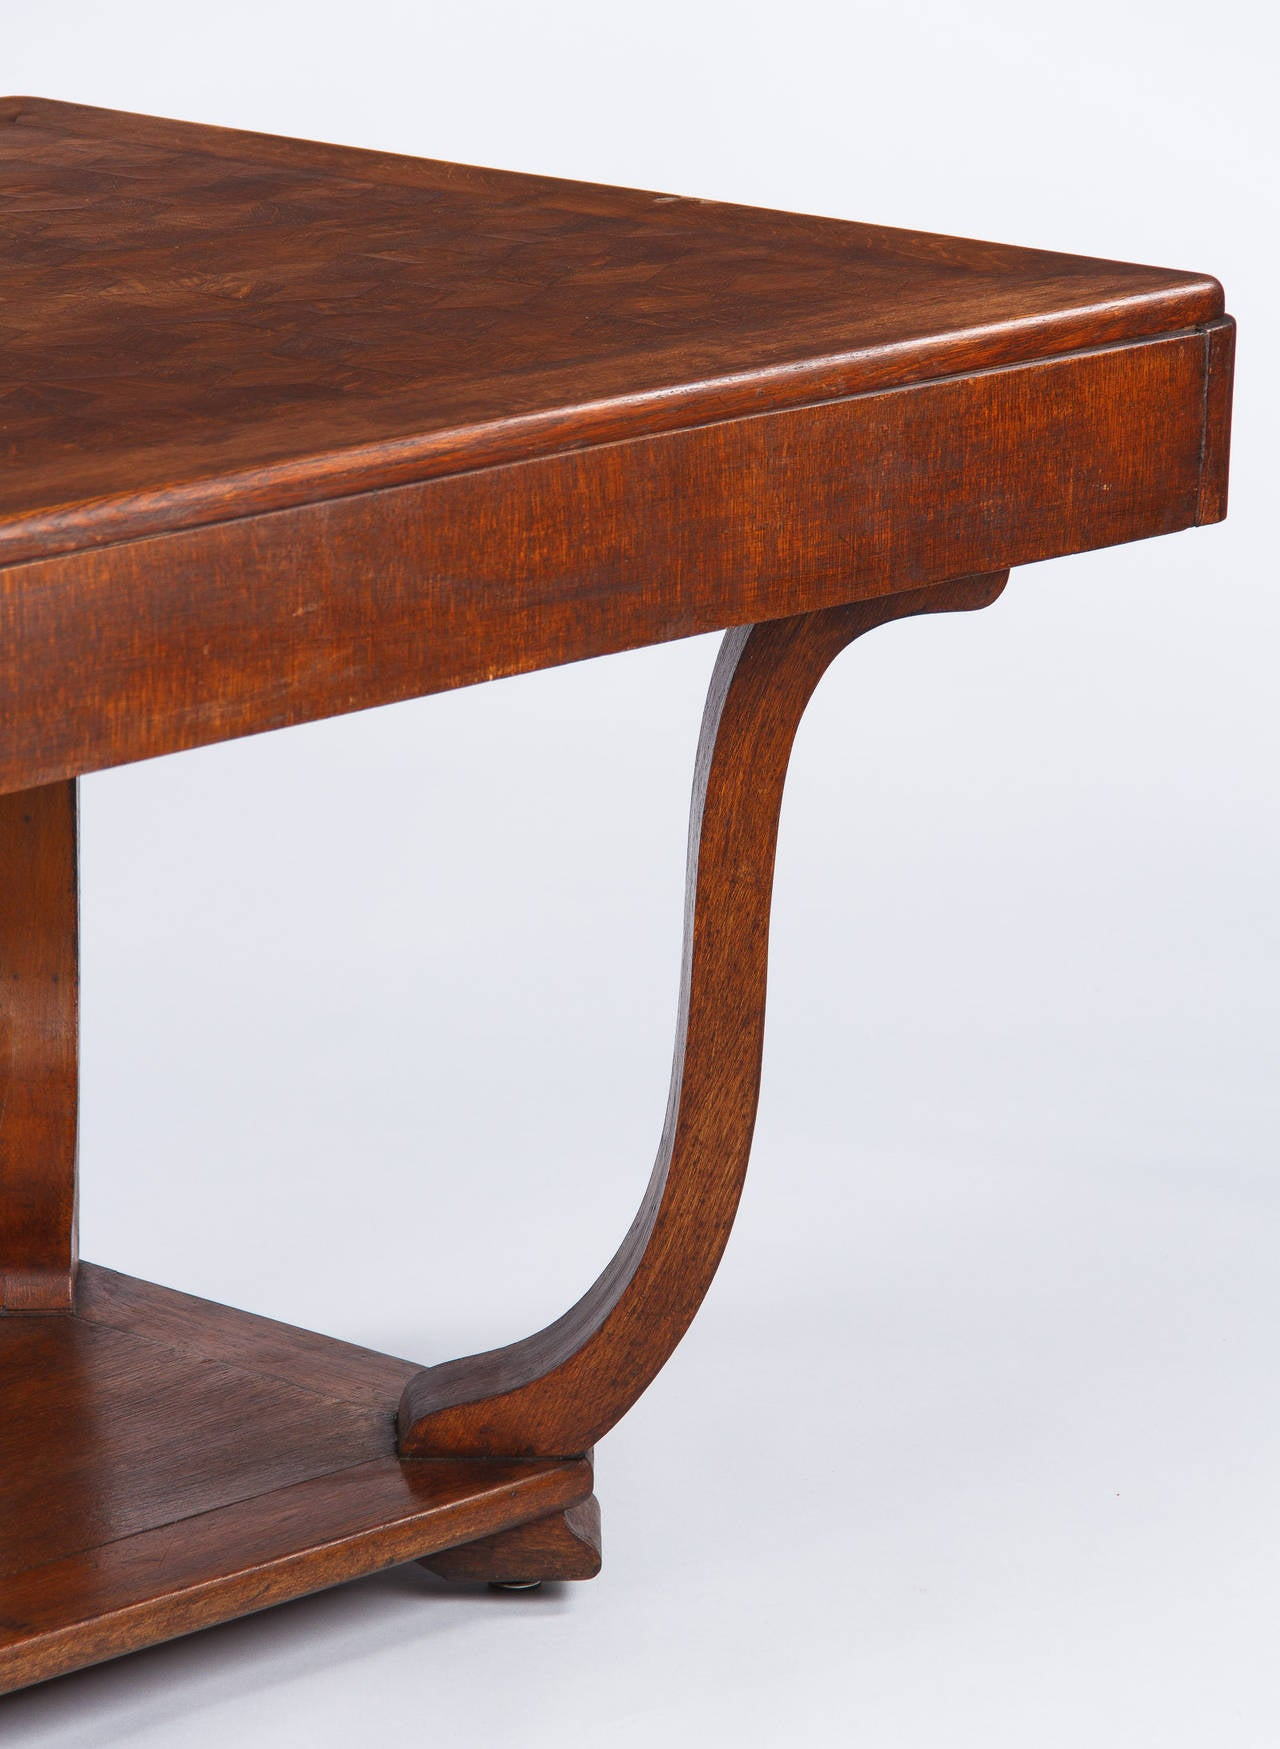 1930s French Parquet Top Table at 1stdibs : 8l from www.1stdibs.com size 1280 x 1749 jpeg 165kB